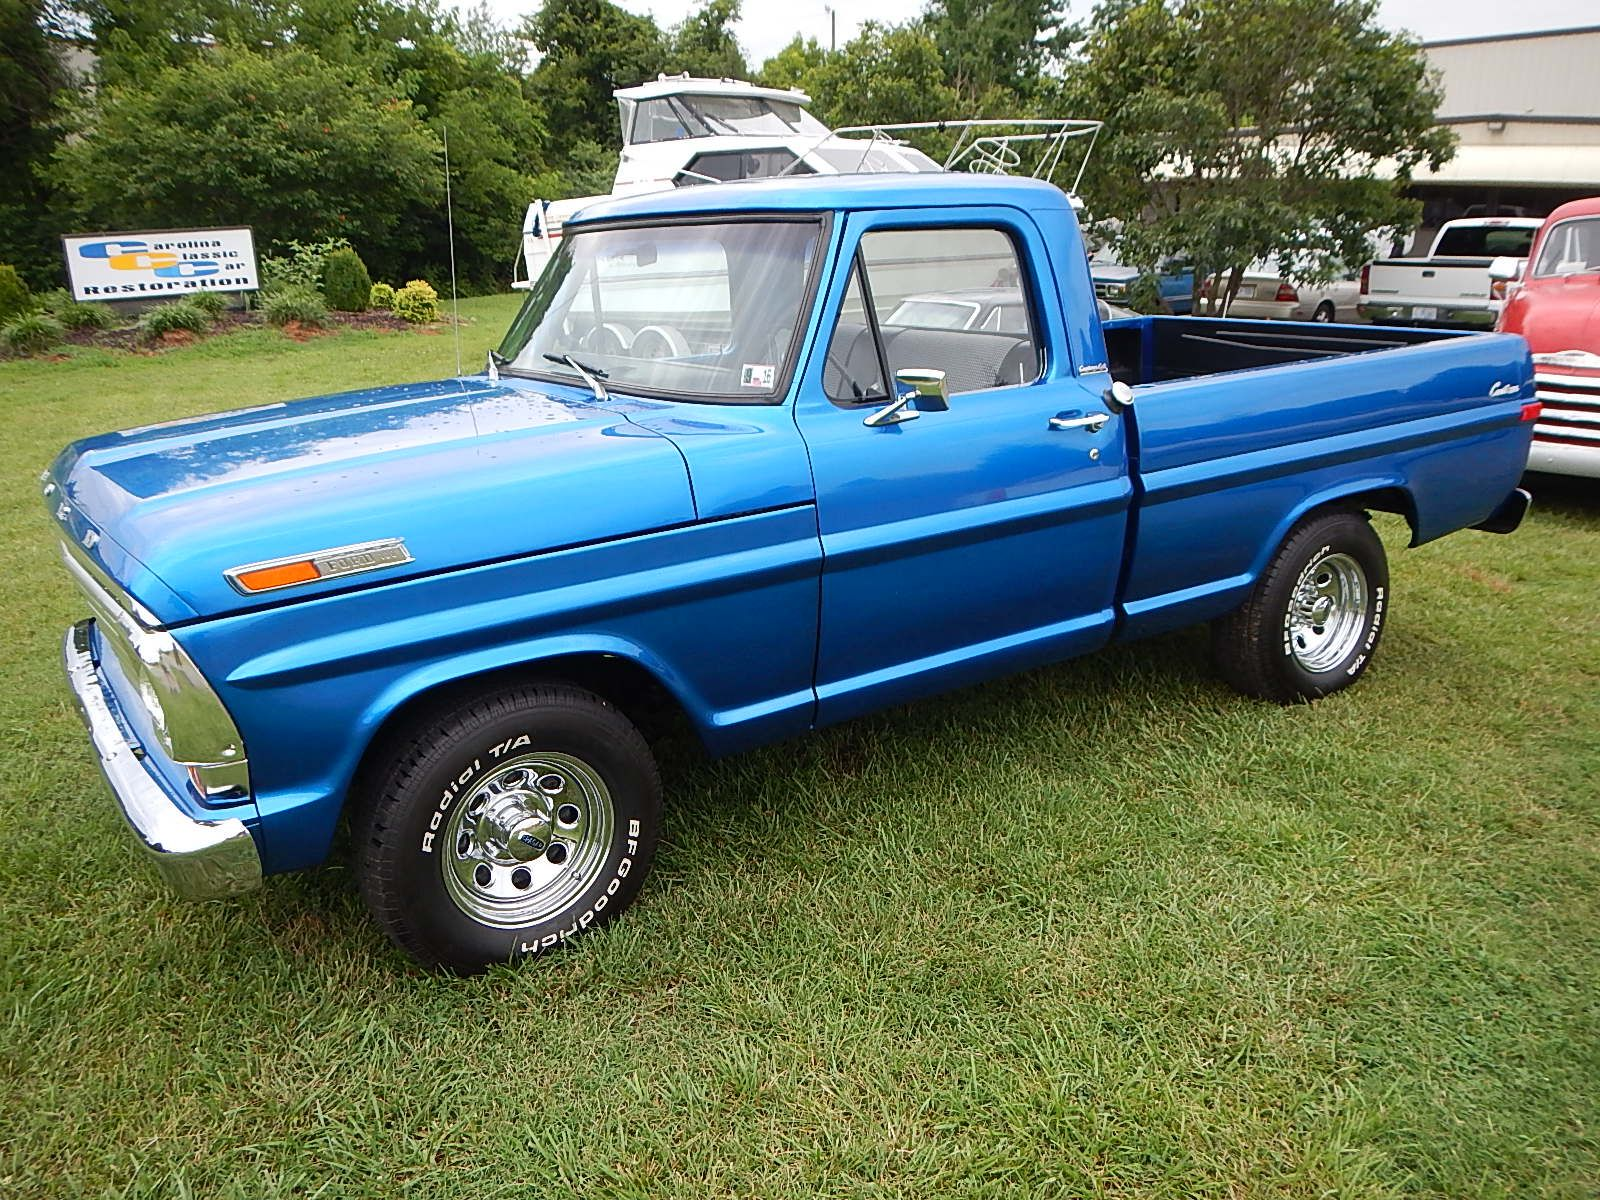 1968 Ford F-100 - Front End Swap